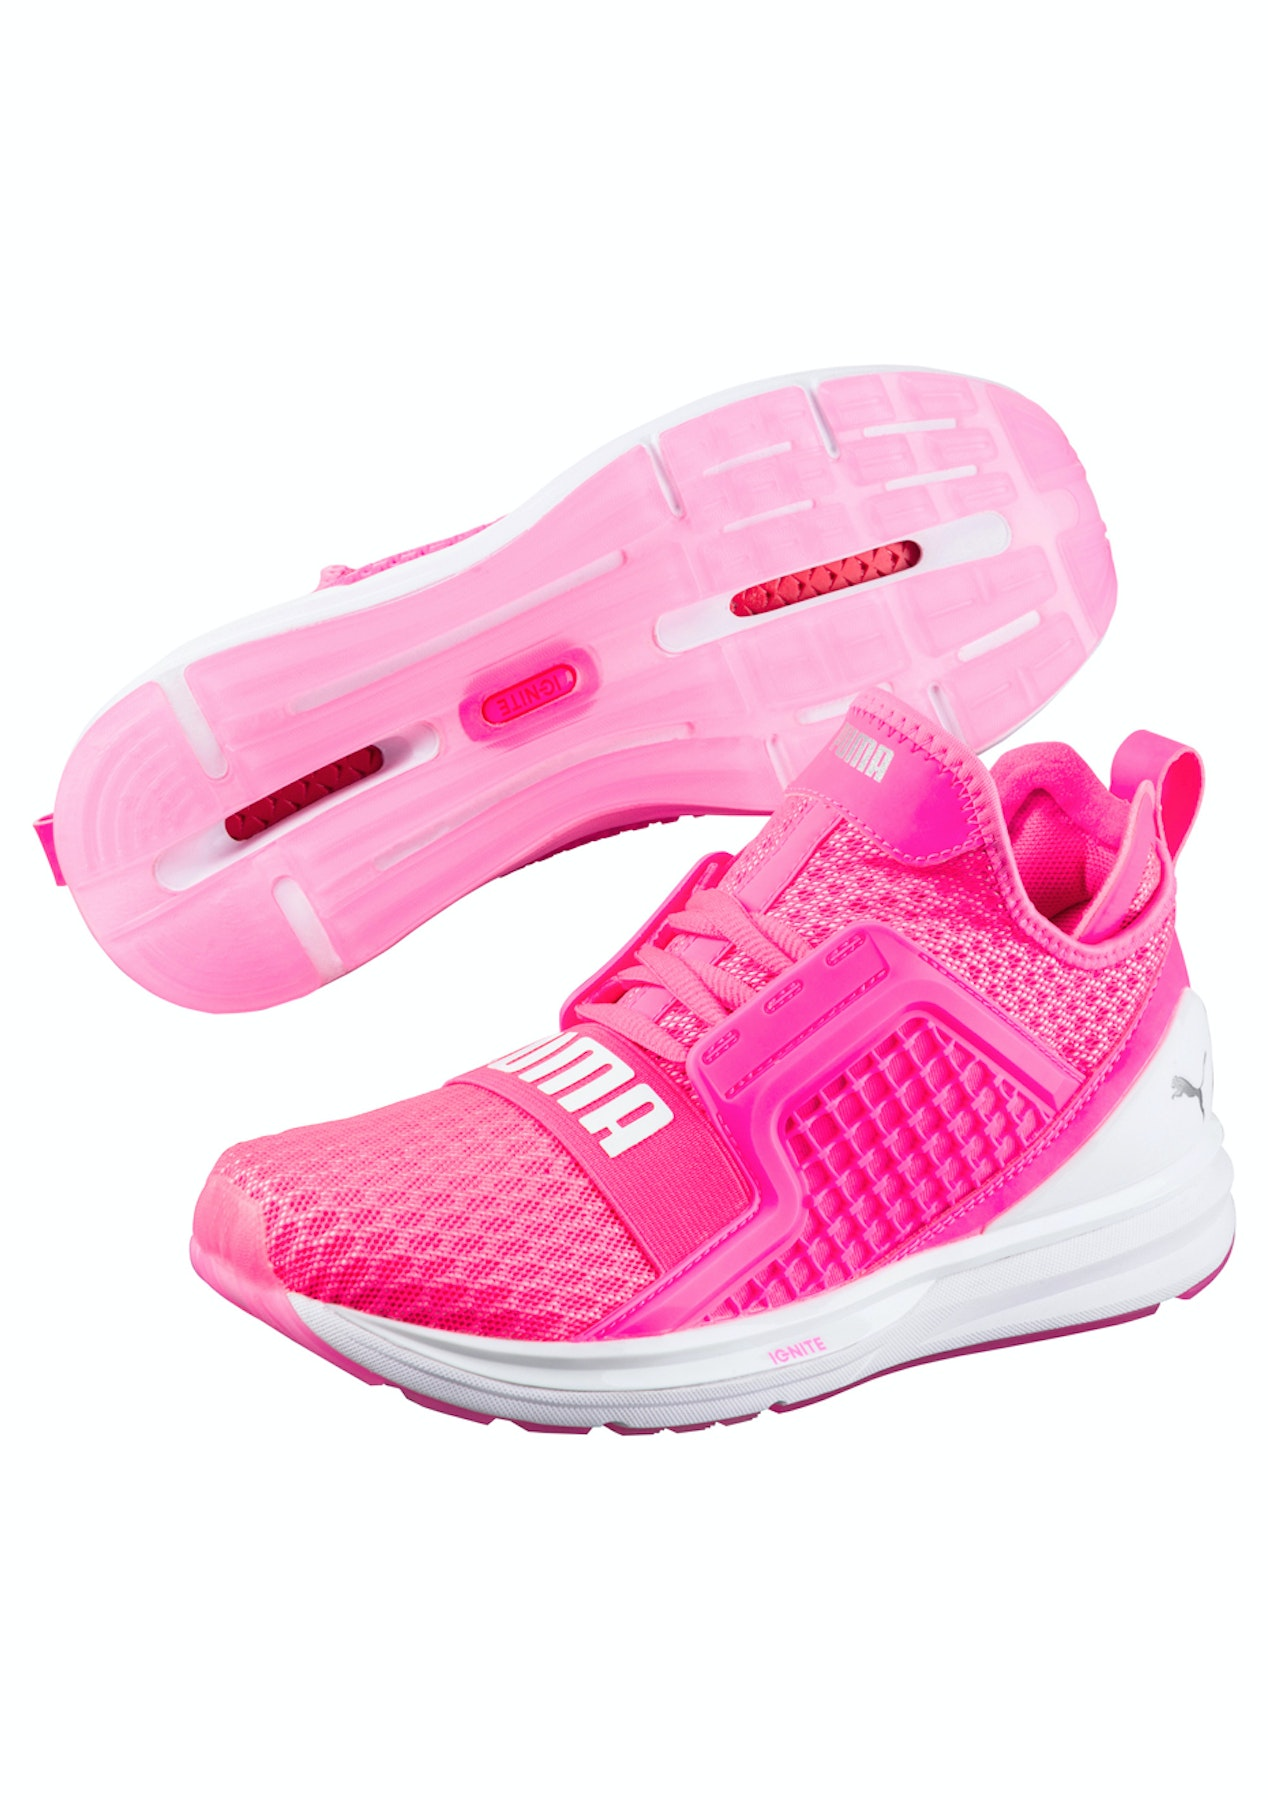 Puma Womens - Ignite Limitless Pink - Free shipping Winter Activewear -  Onceit 4b7050dfb